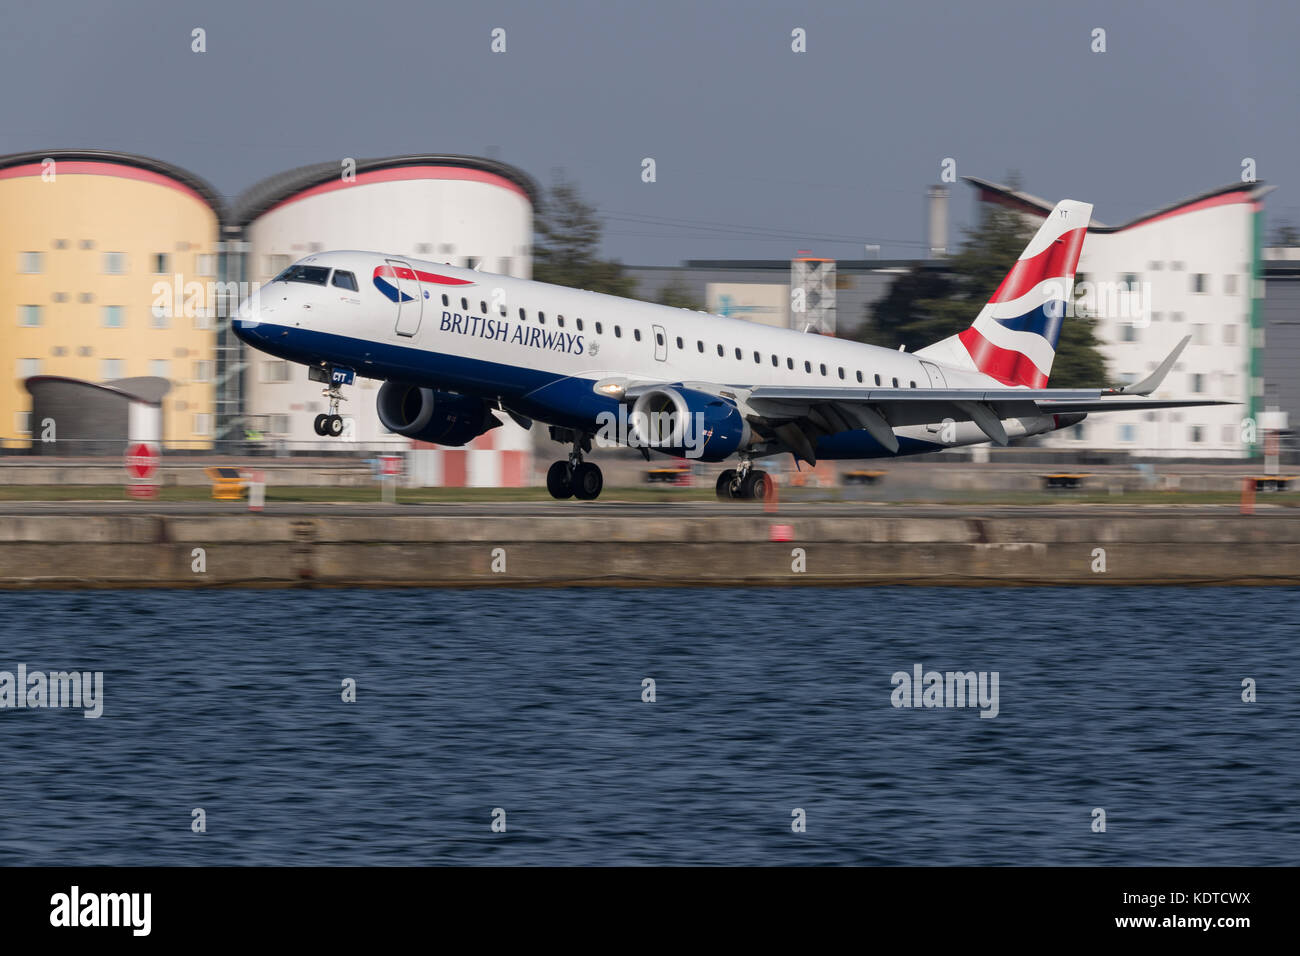 British Airways aircraft at london City Airport.Stock Photo